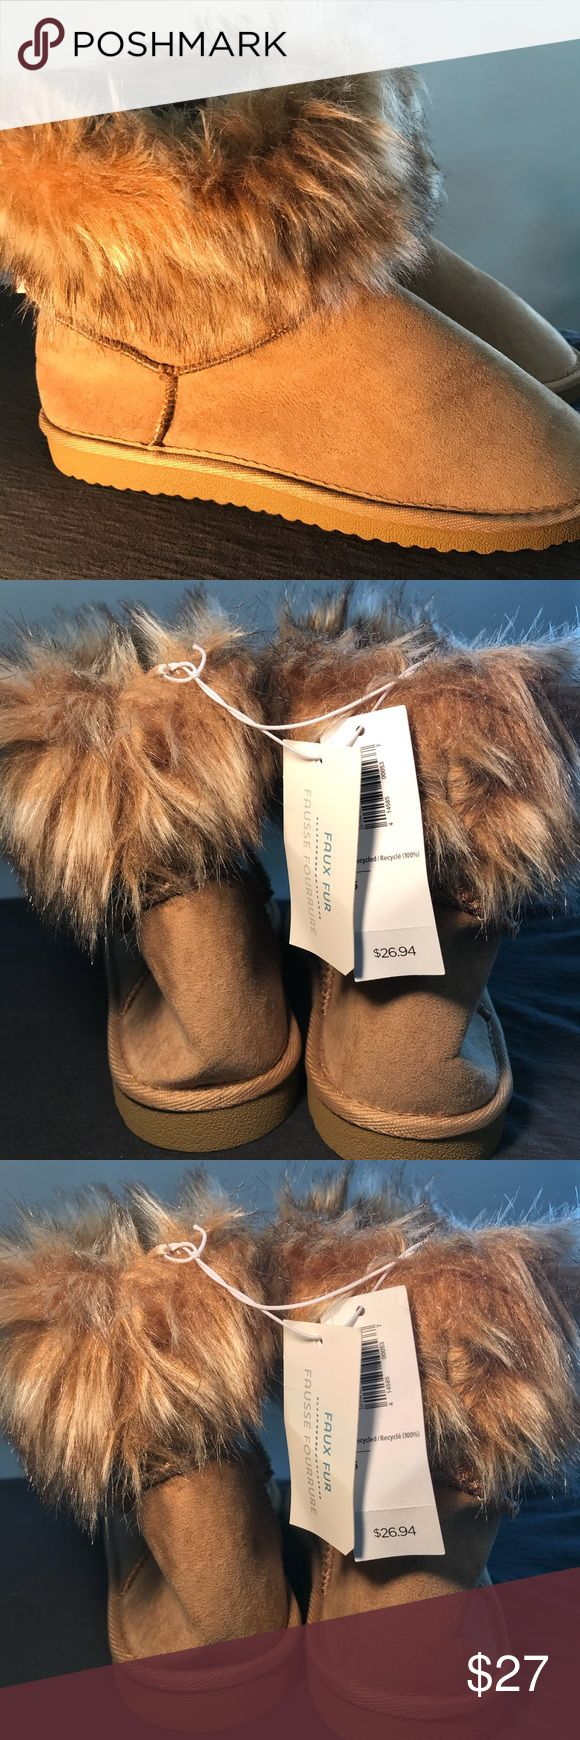 ❄️NEW Old Navy Snow Boots❄️ ✂️1Hr.🔻❄️NEW Old Navy Snow Boots❄️ W/ Tags Never Worn✨✨✨✨✨ Warm & Cozy♥️ Old Navy Shoes Winter & Rain Boots